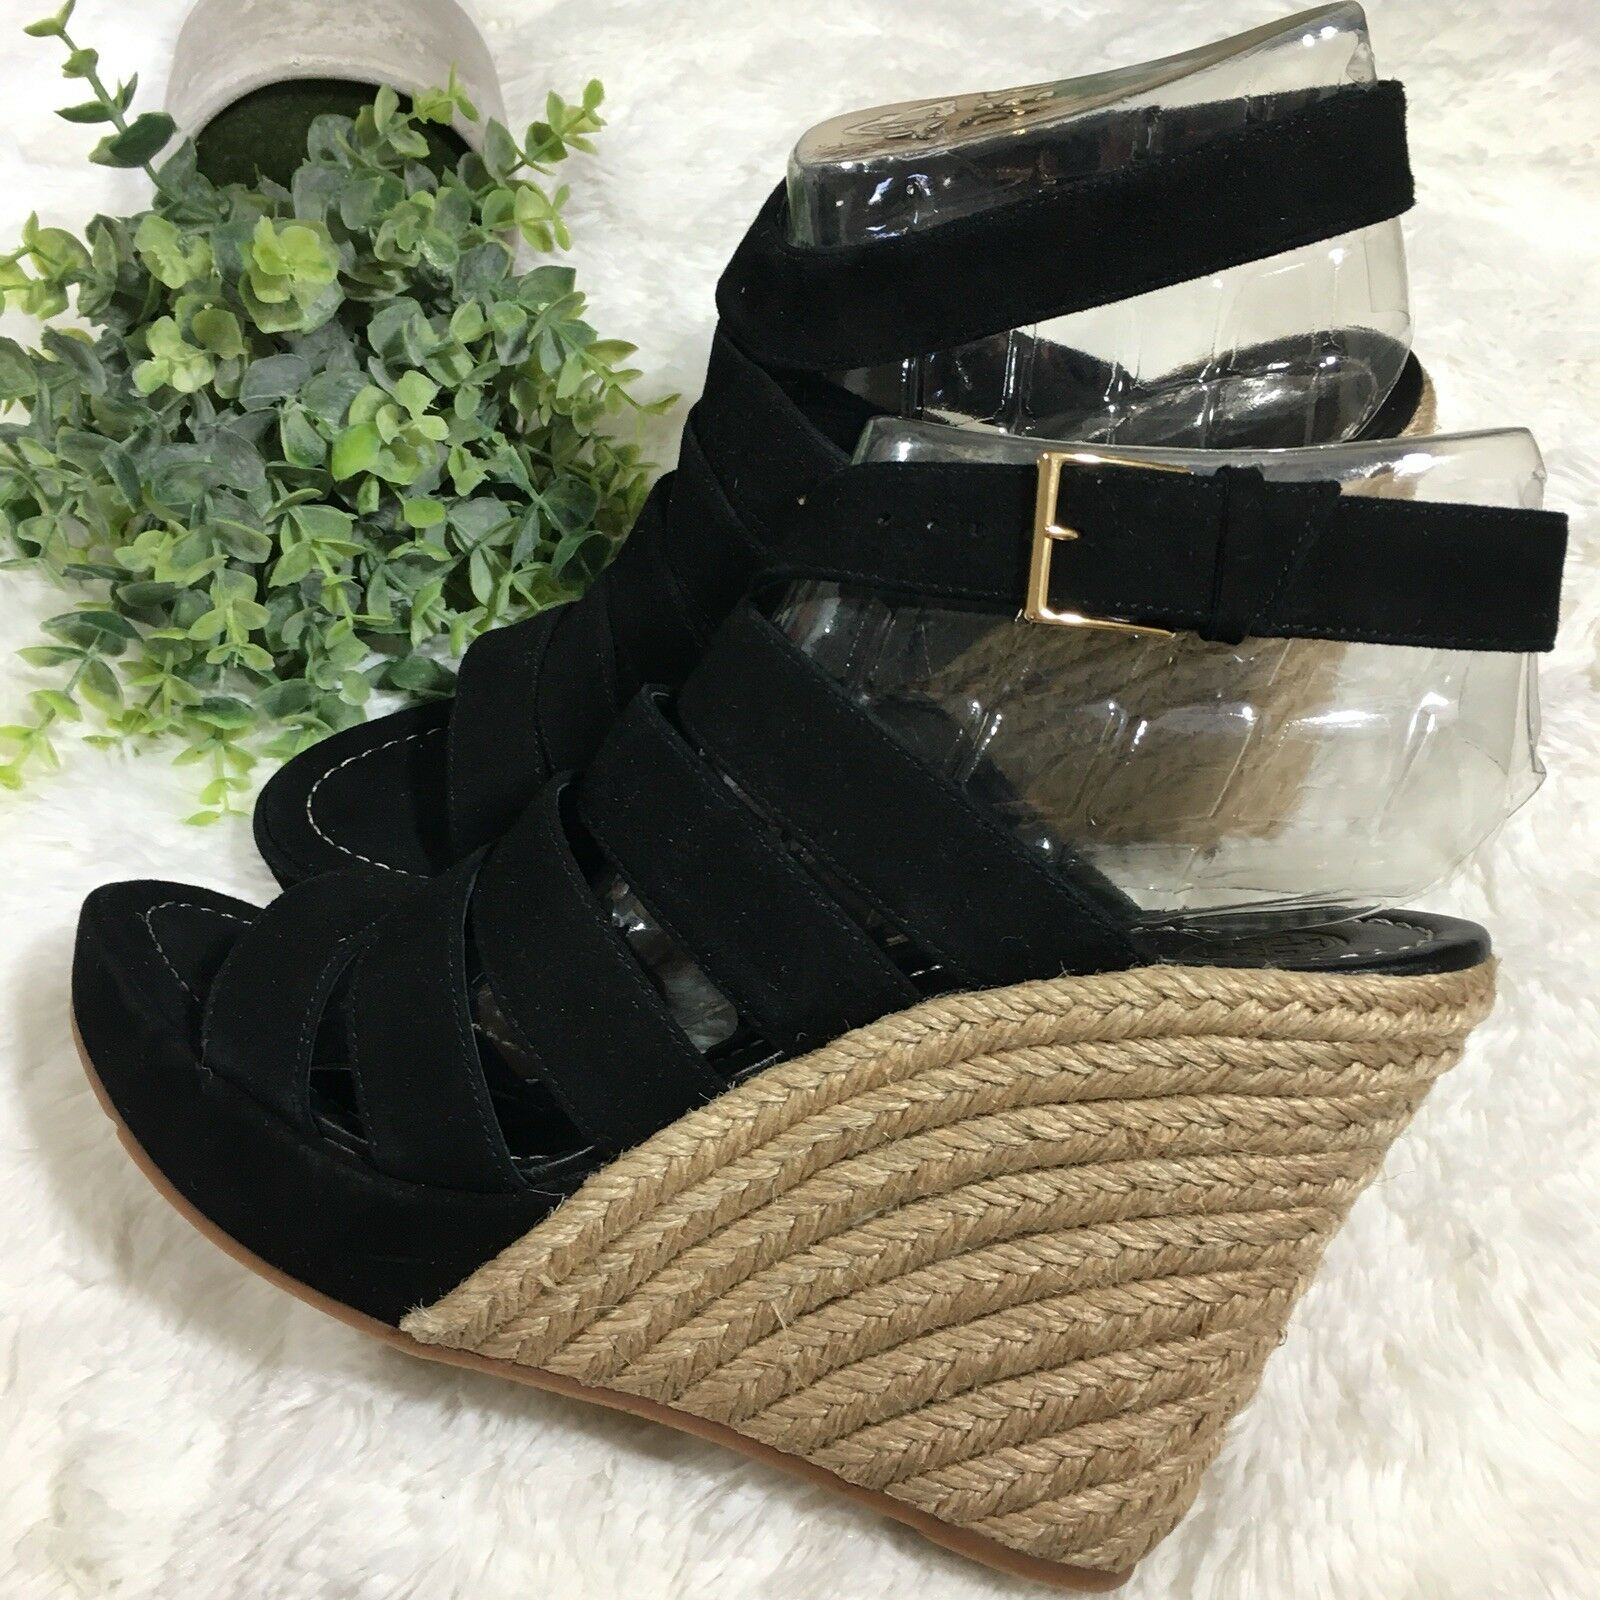 Tory Burch Bailey Multi Steal Wedge Espadrille Sandals Size 10.5 Retail  358